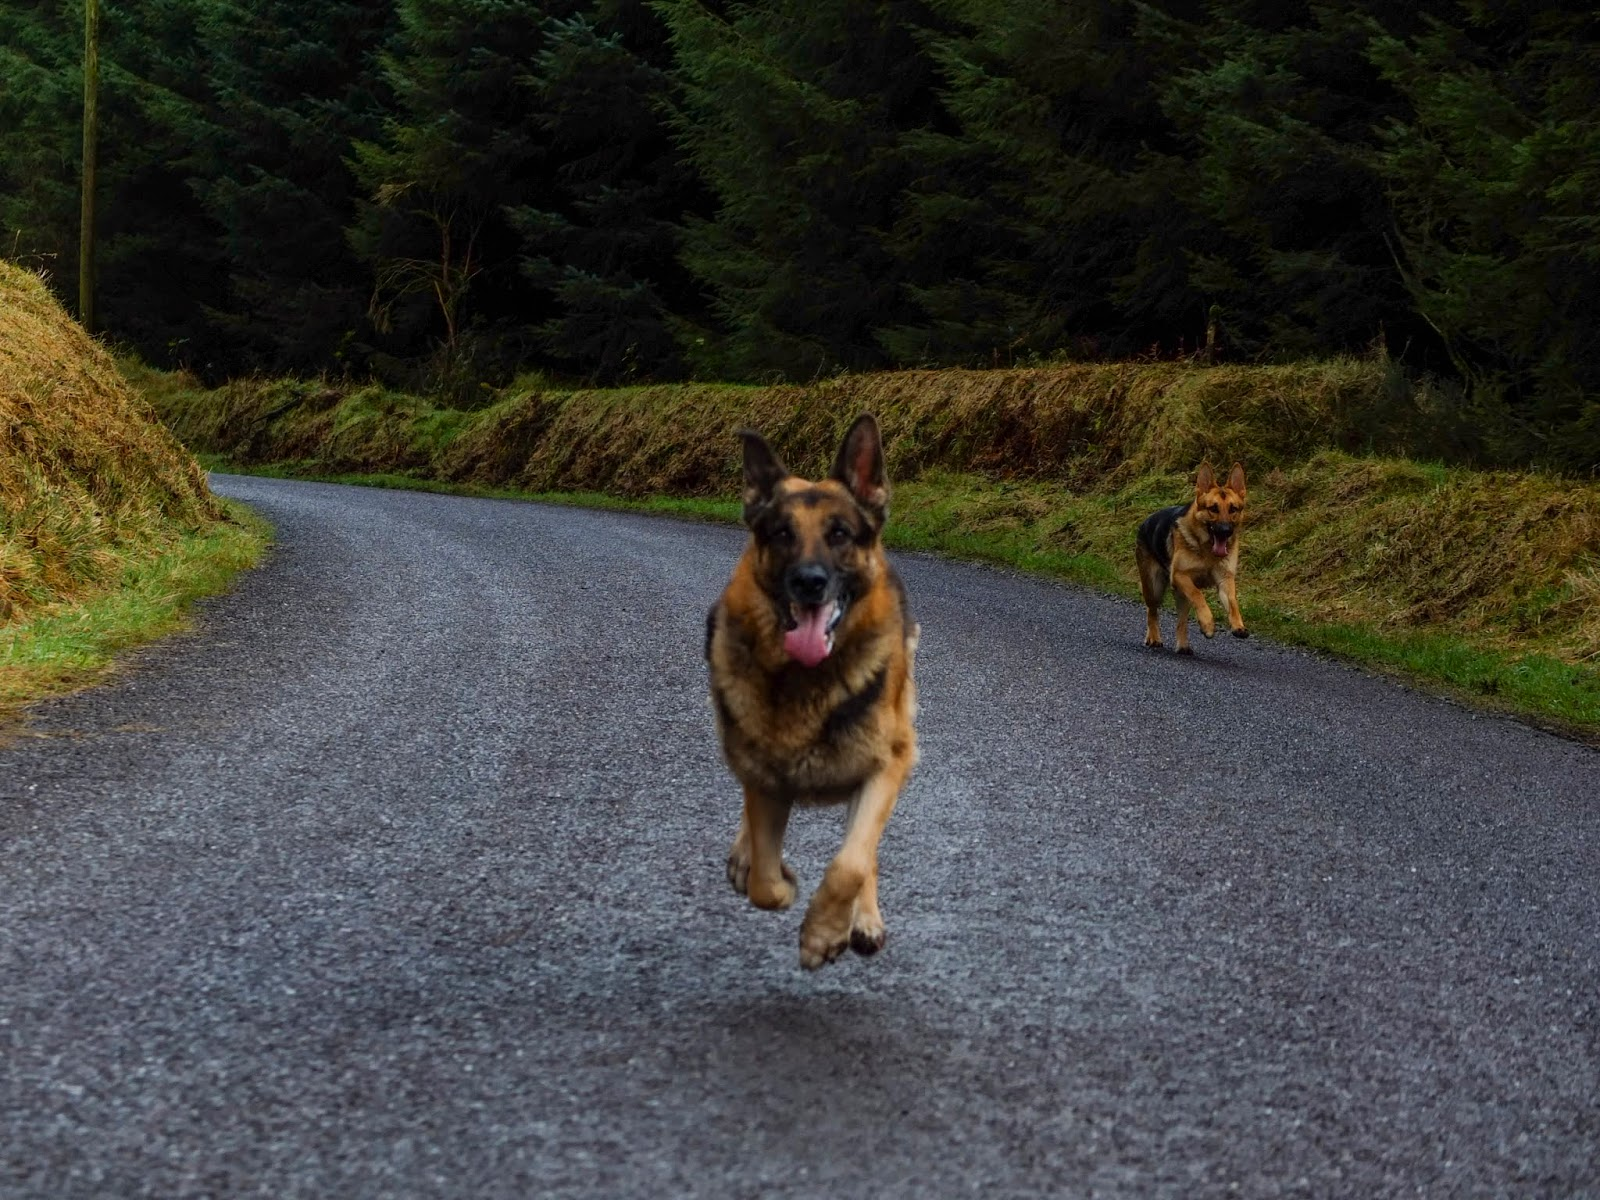 German Shepherds running on a country road.